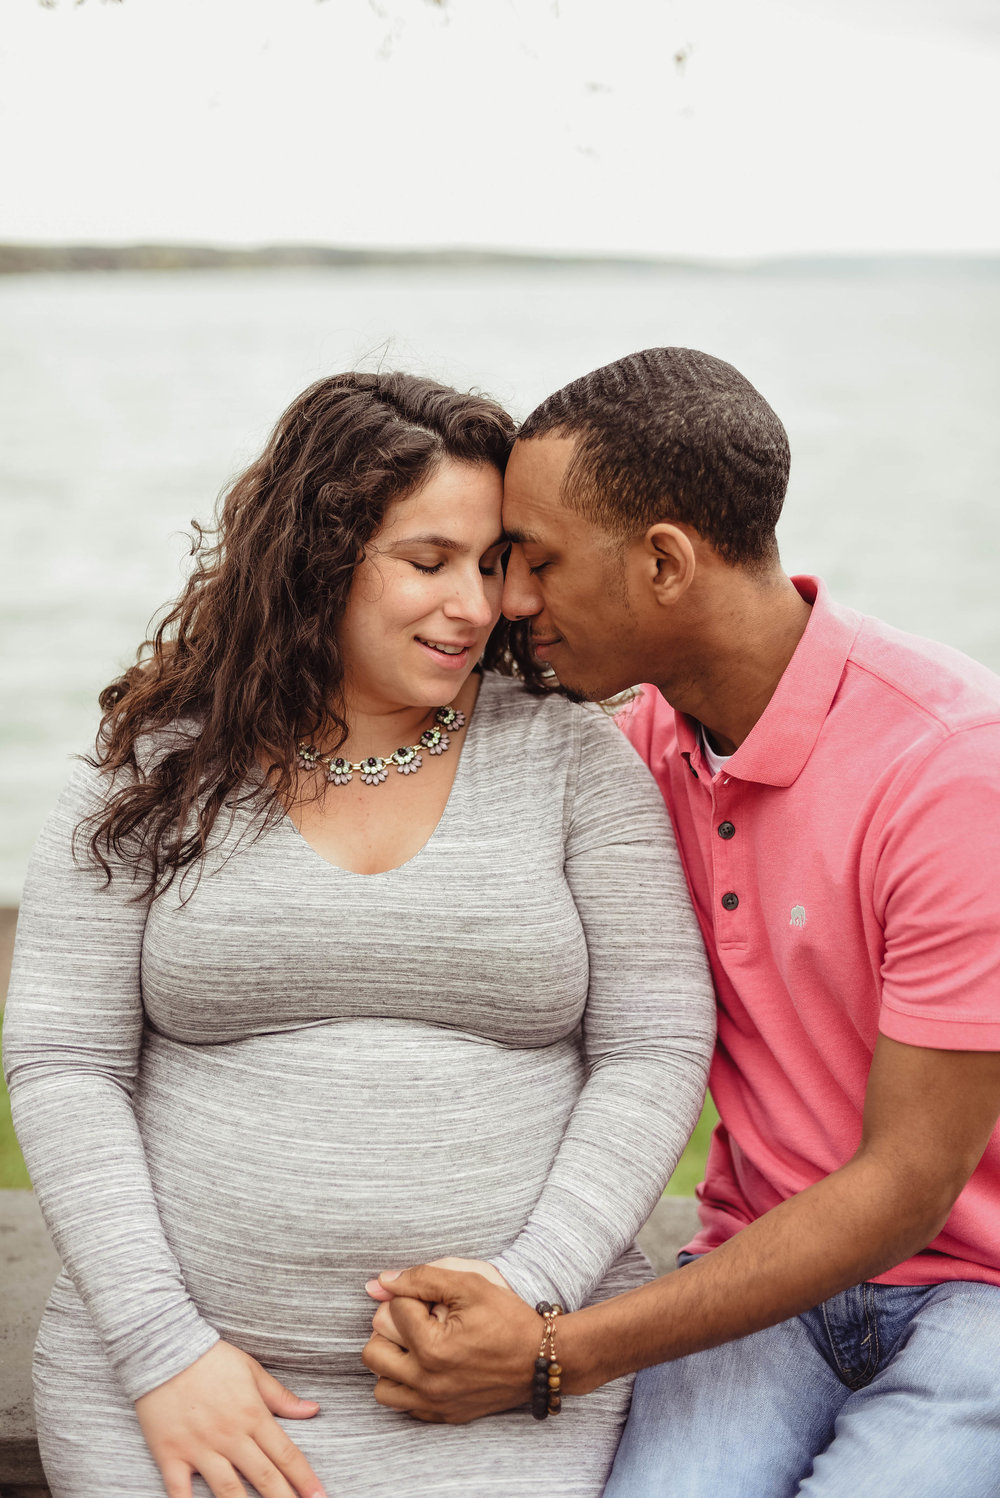 Outdoor Skaneateles lake lakeside maternity photoshoot photography session